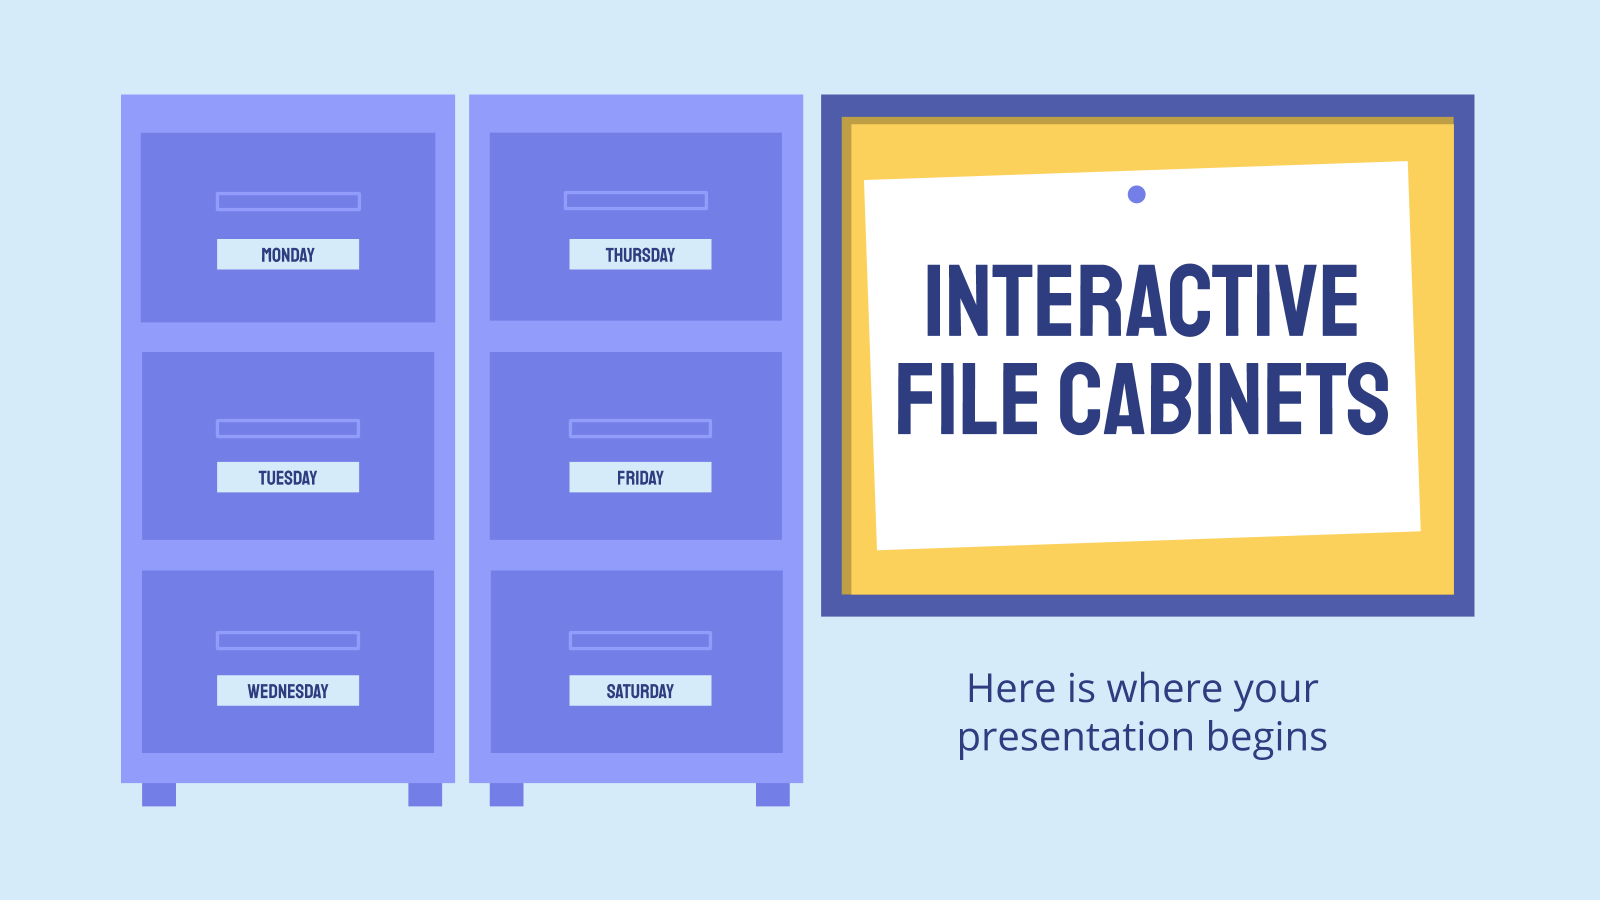 Interactive File Cabinets presentation template